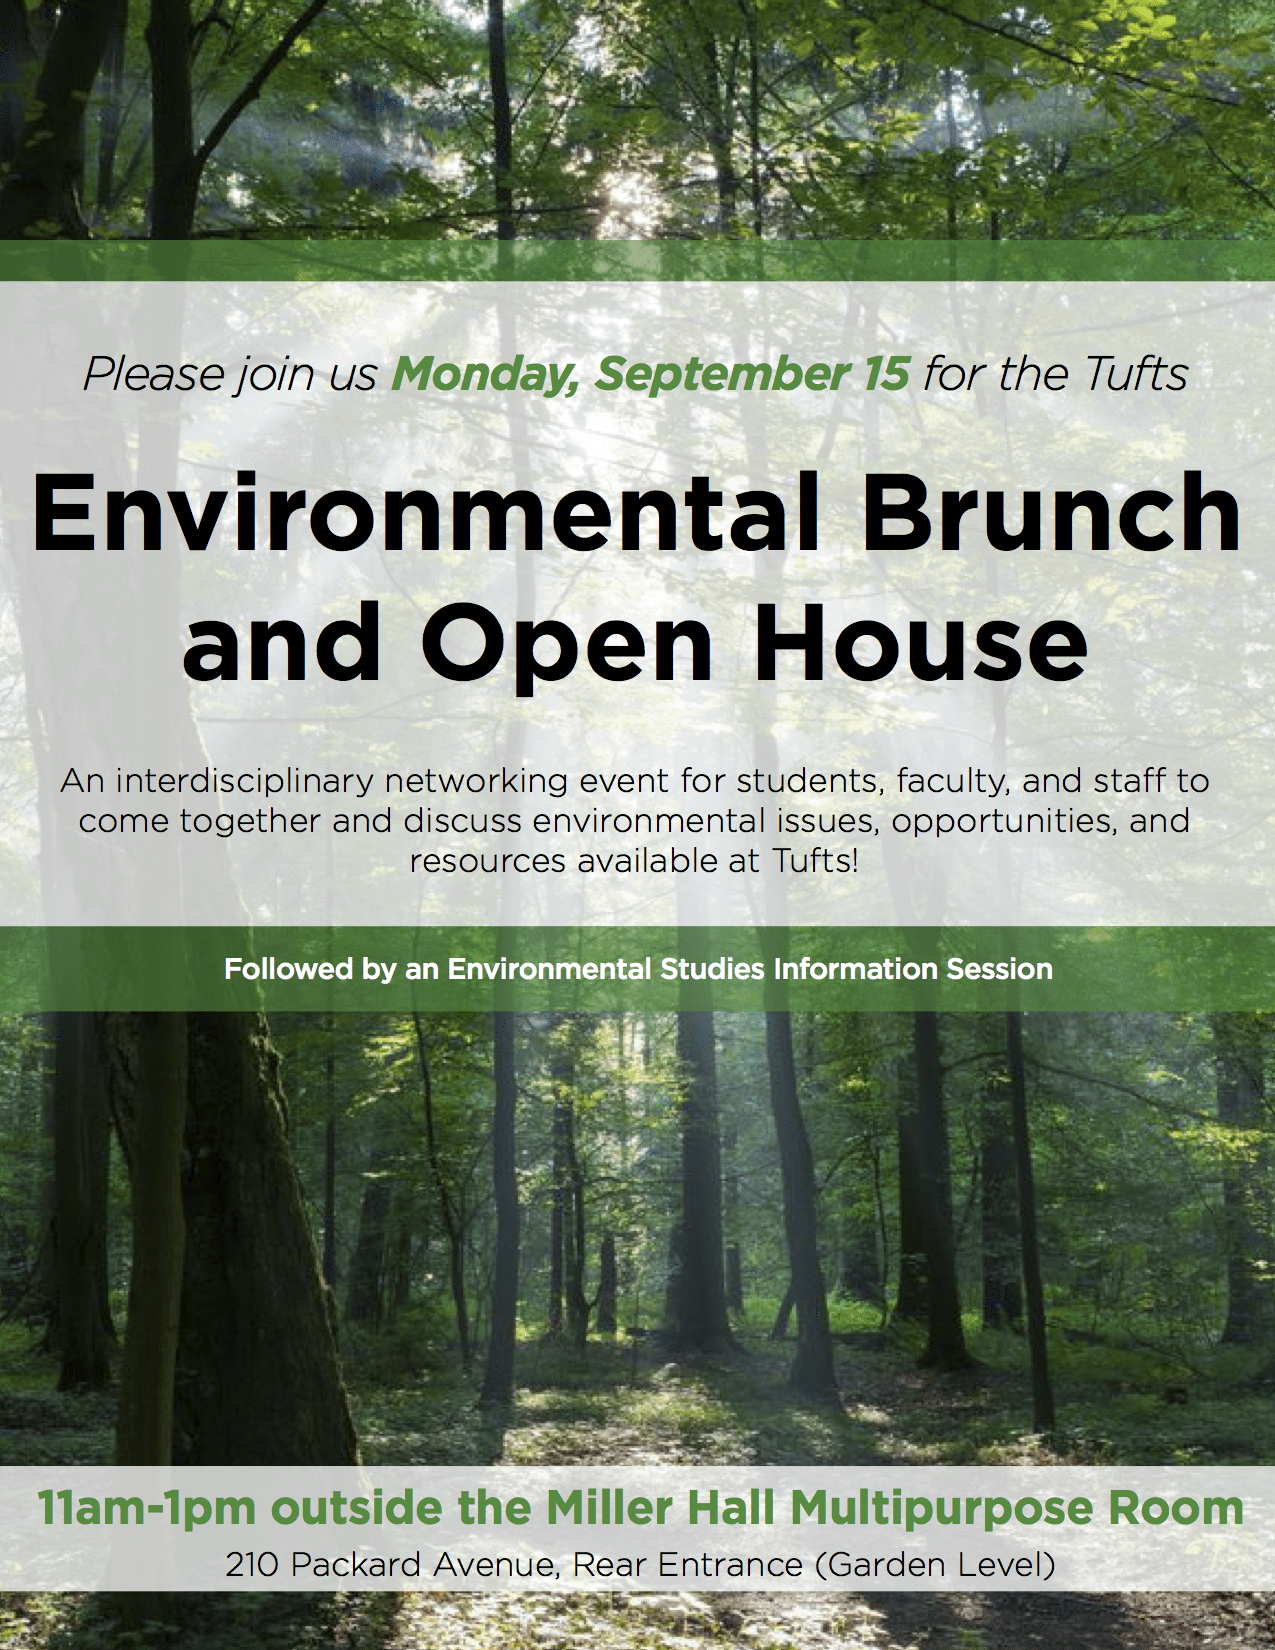 TIE_Tufts Environmental Community Brunch & Open House_2014